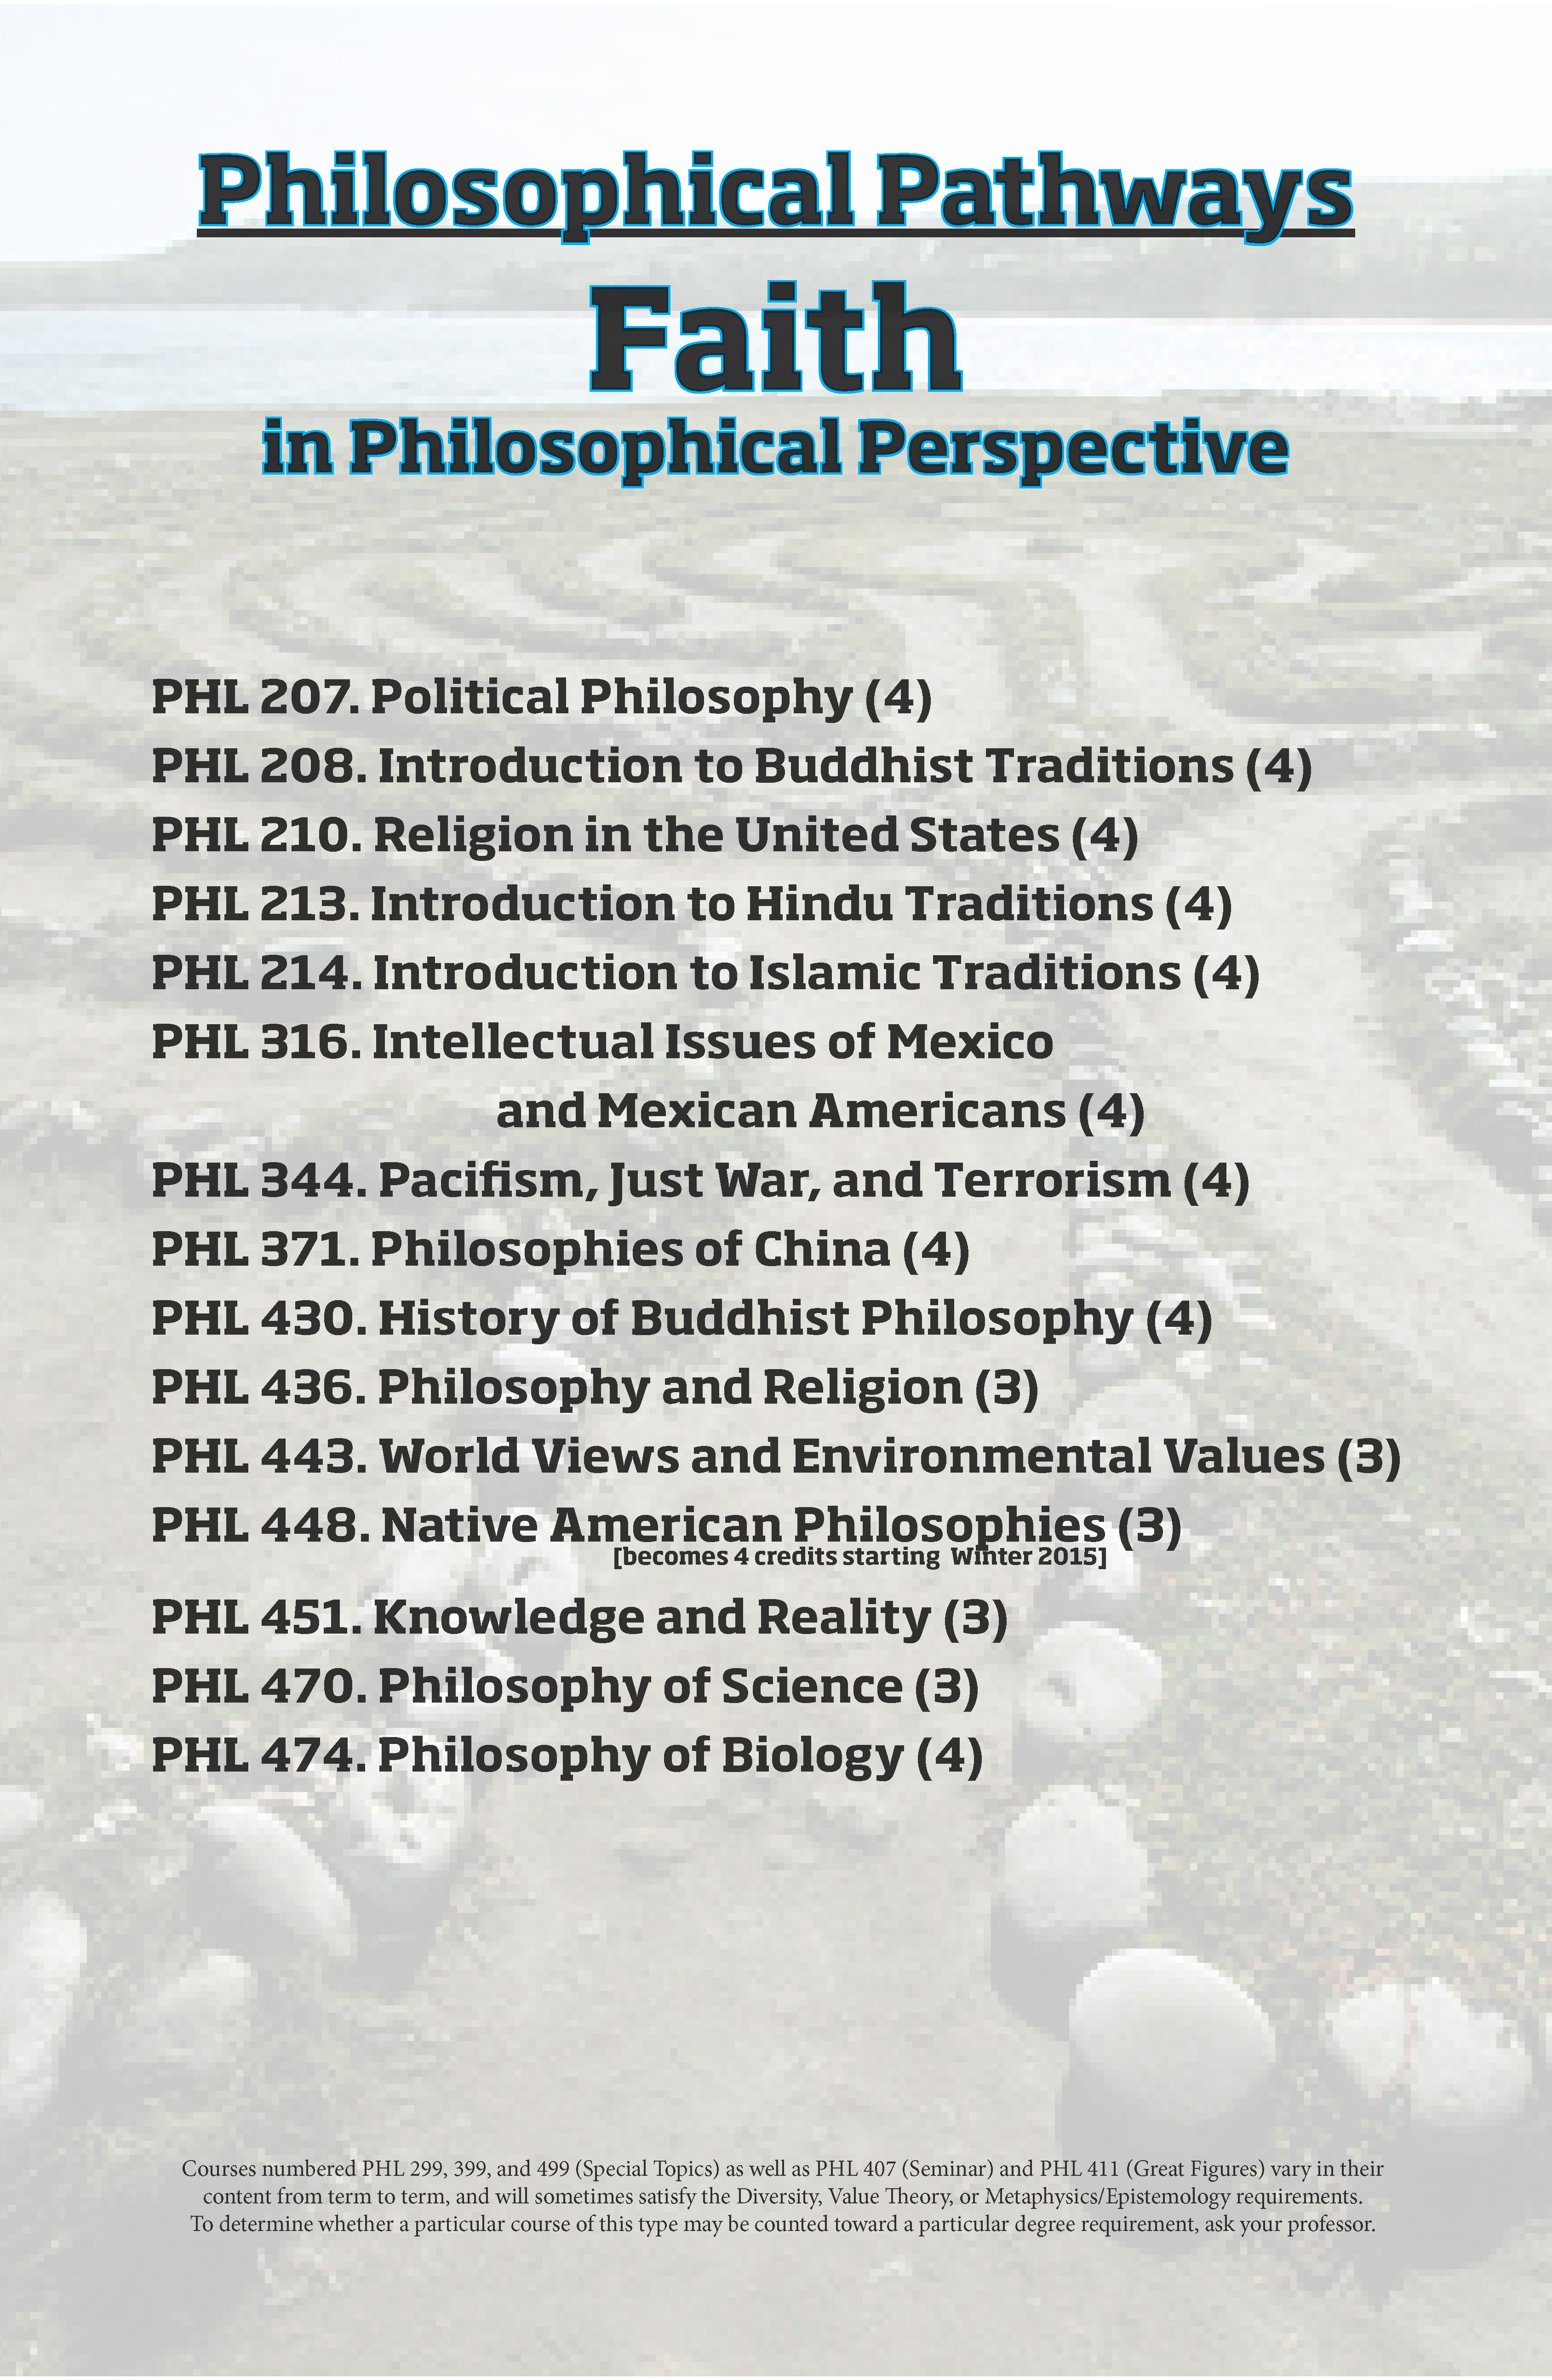 Faith in Philosophical Perspective